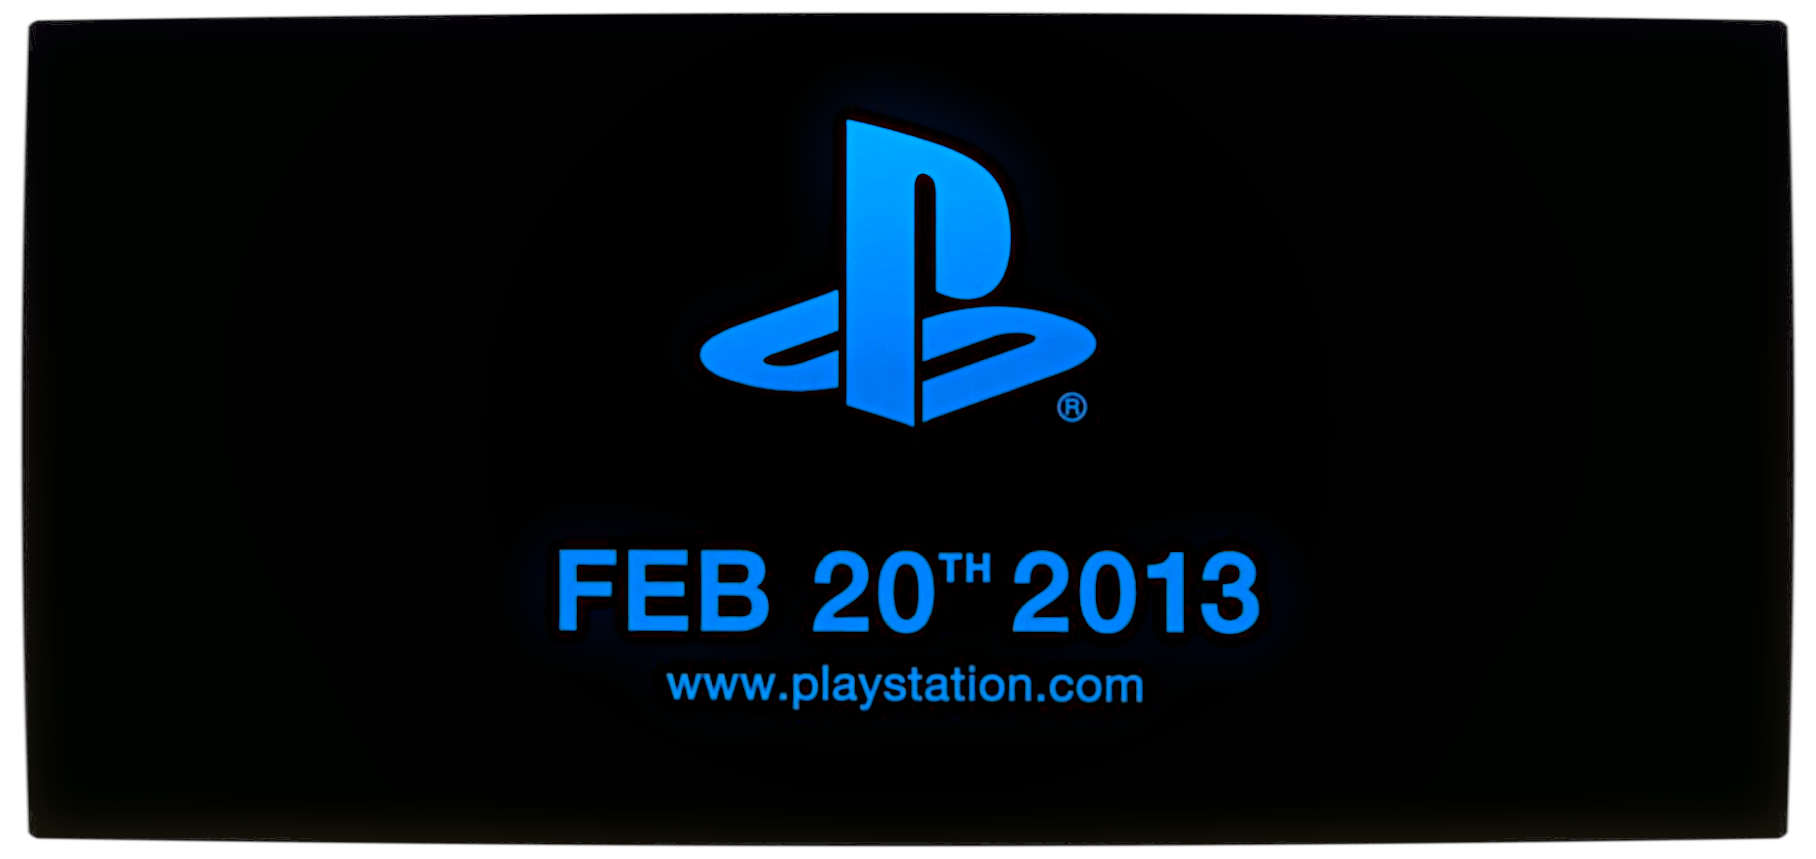 Vamers - FYI - PlayStation 4 Announcement Teaser Banner (20th February 2013)